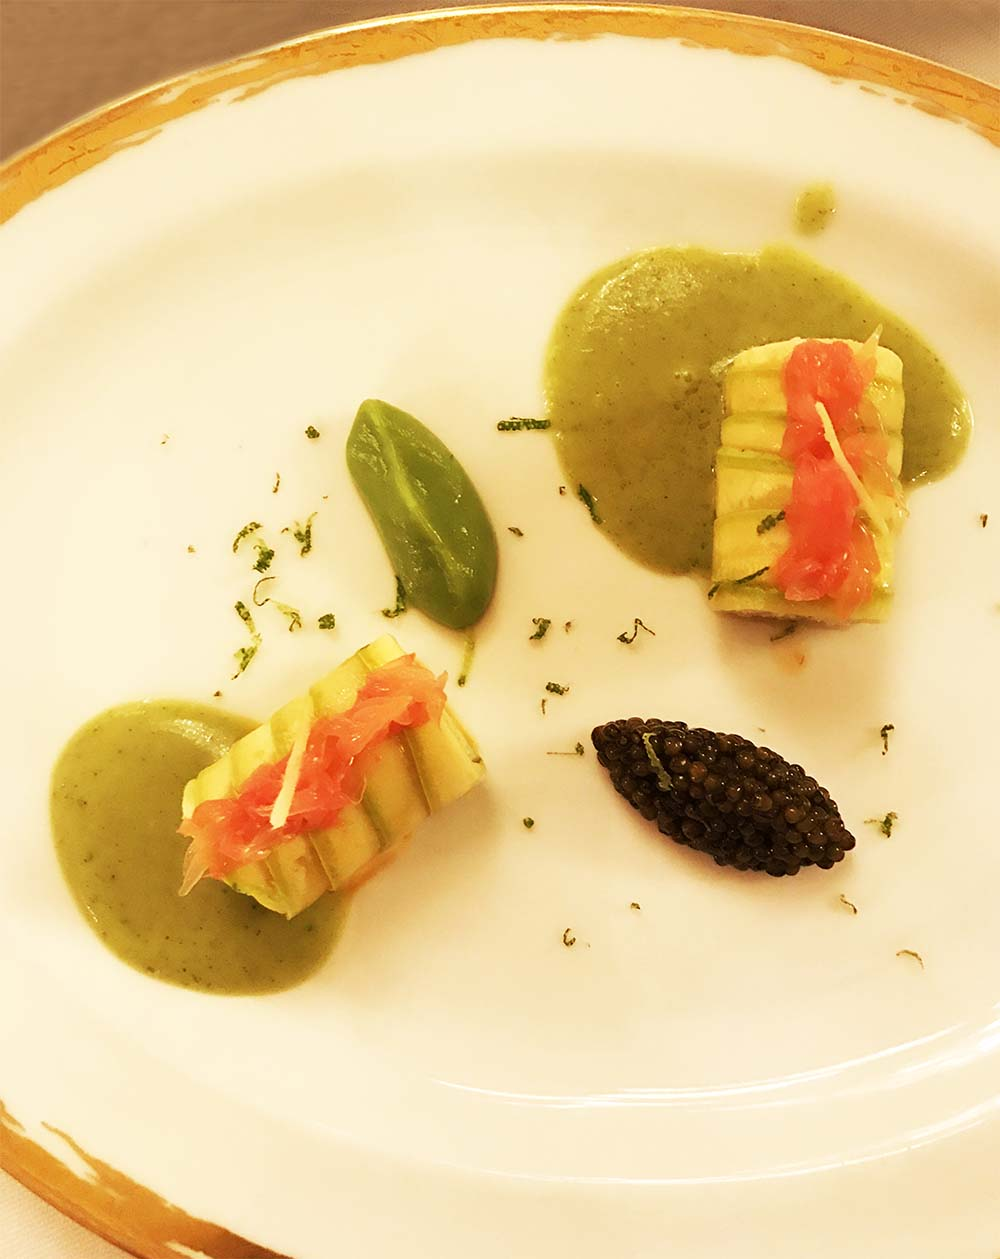 The seafood course at Le Meurice; crab and caviar, with a lovely sorrel sauce.